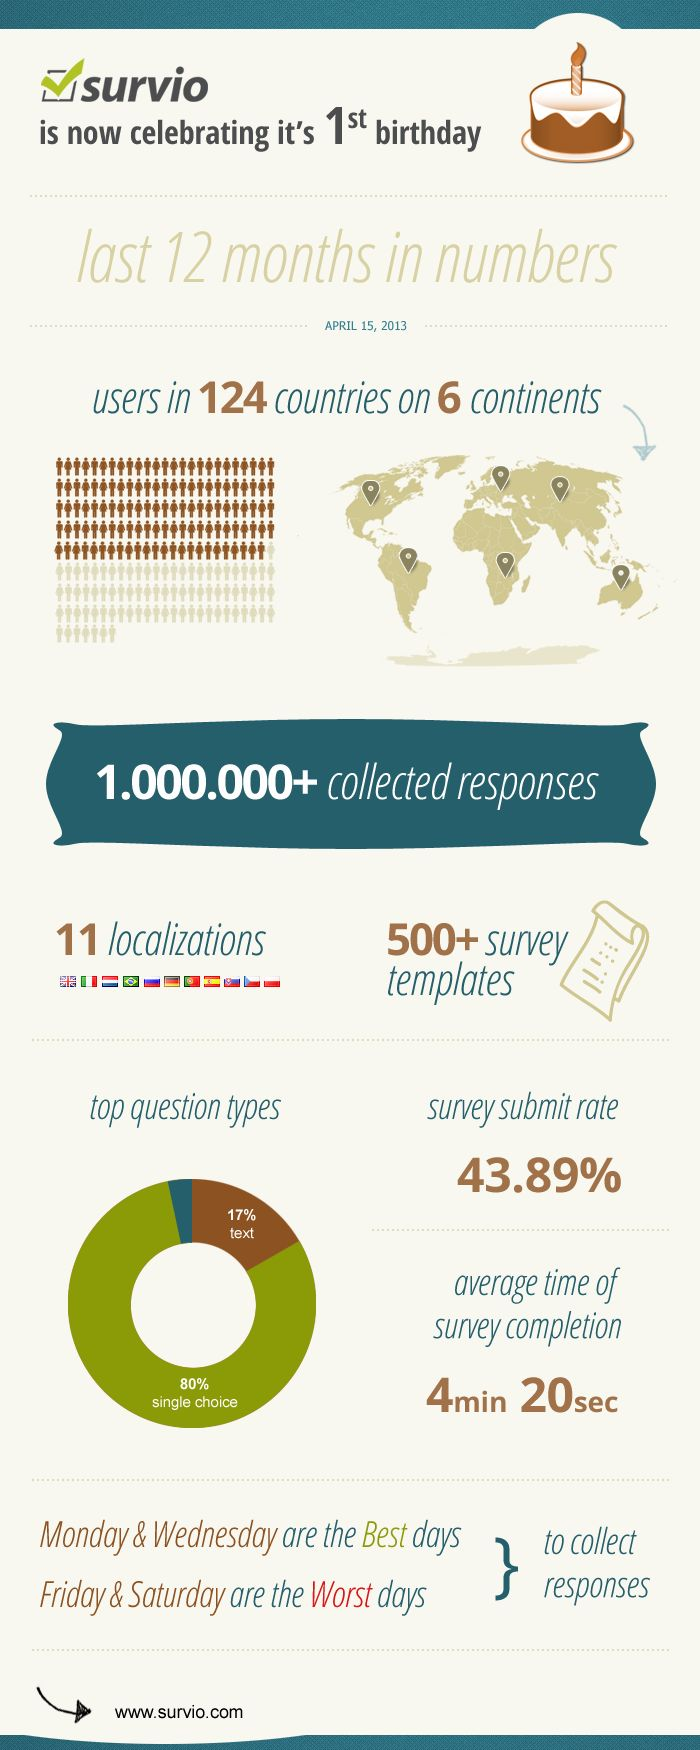 Survio celebrates its 1st birthday by nice and simple survey infographics :)